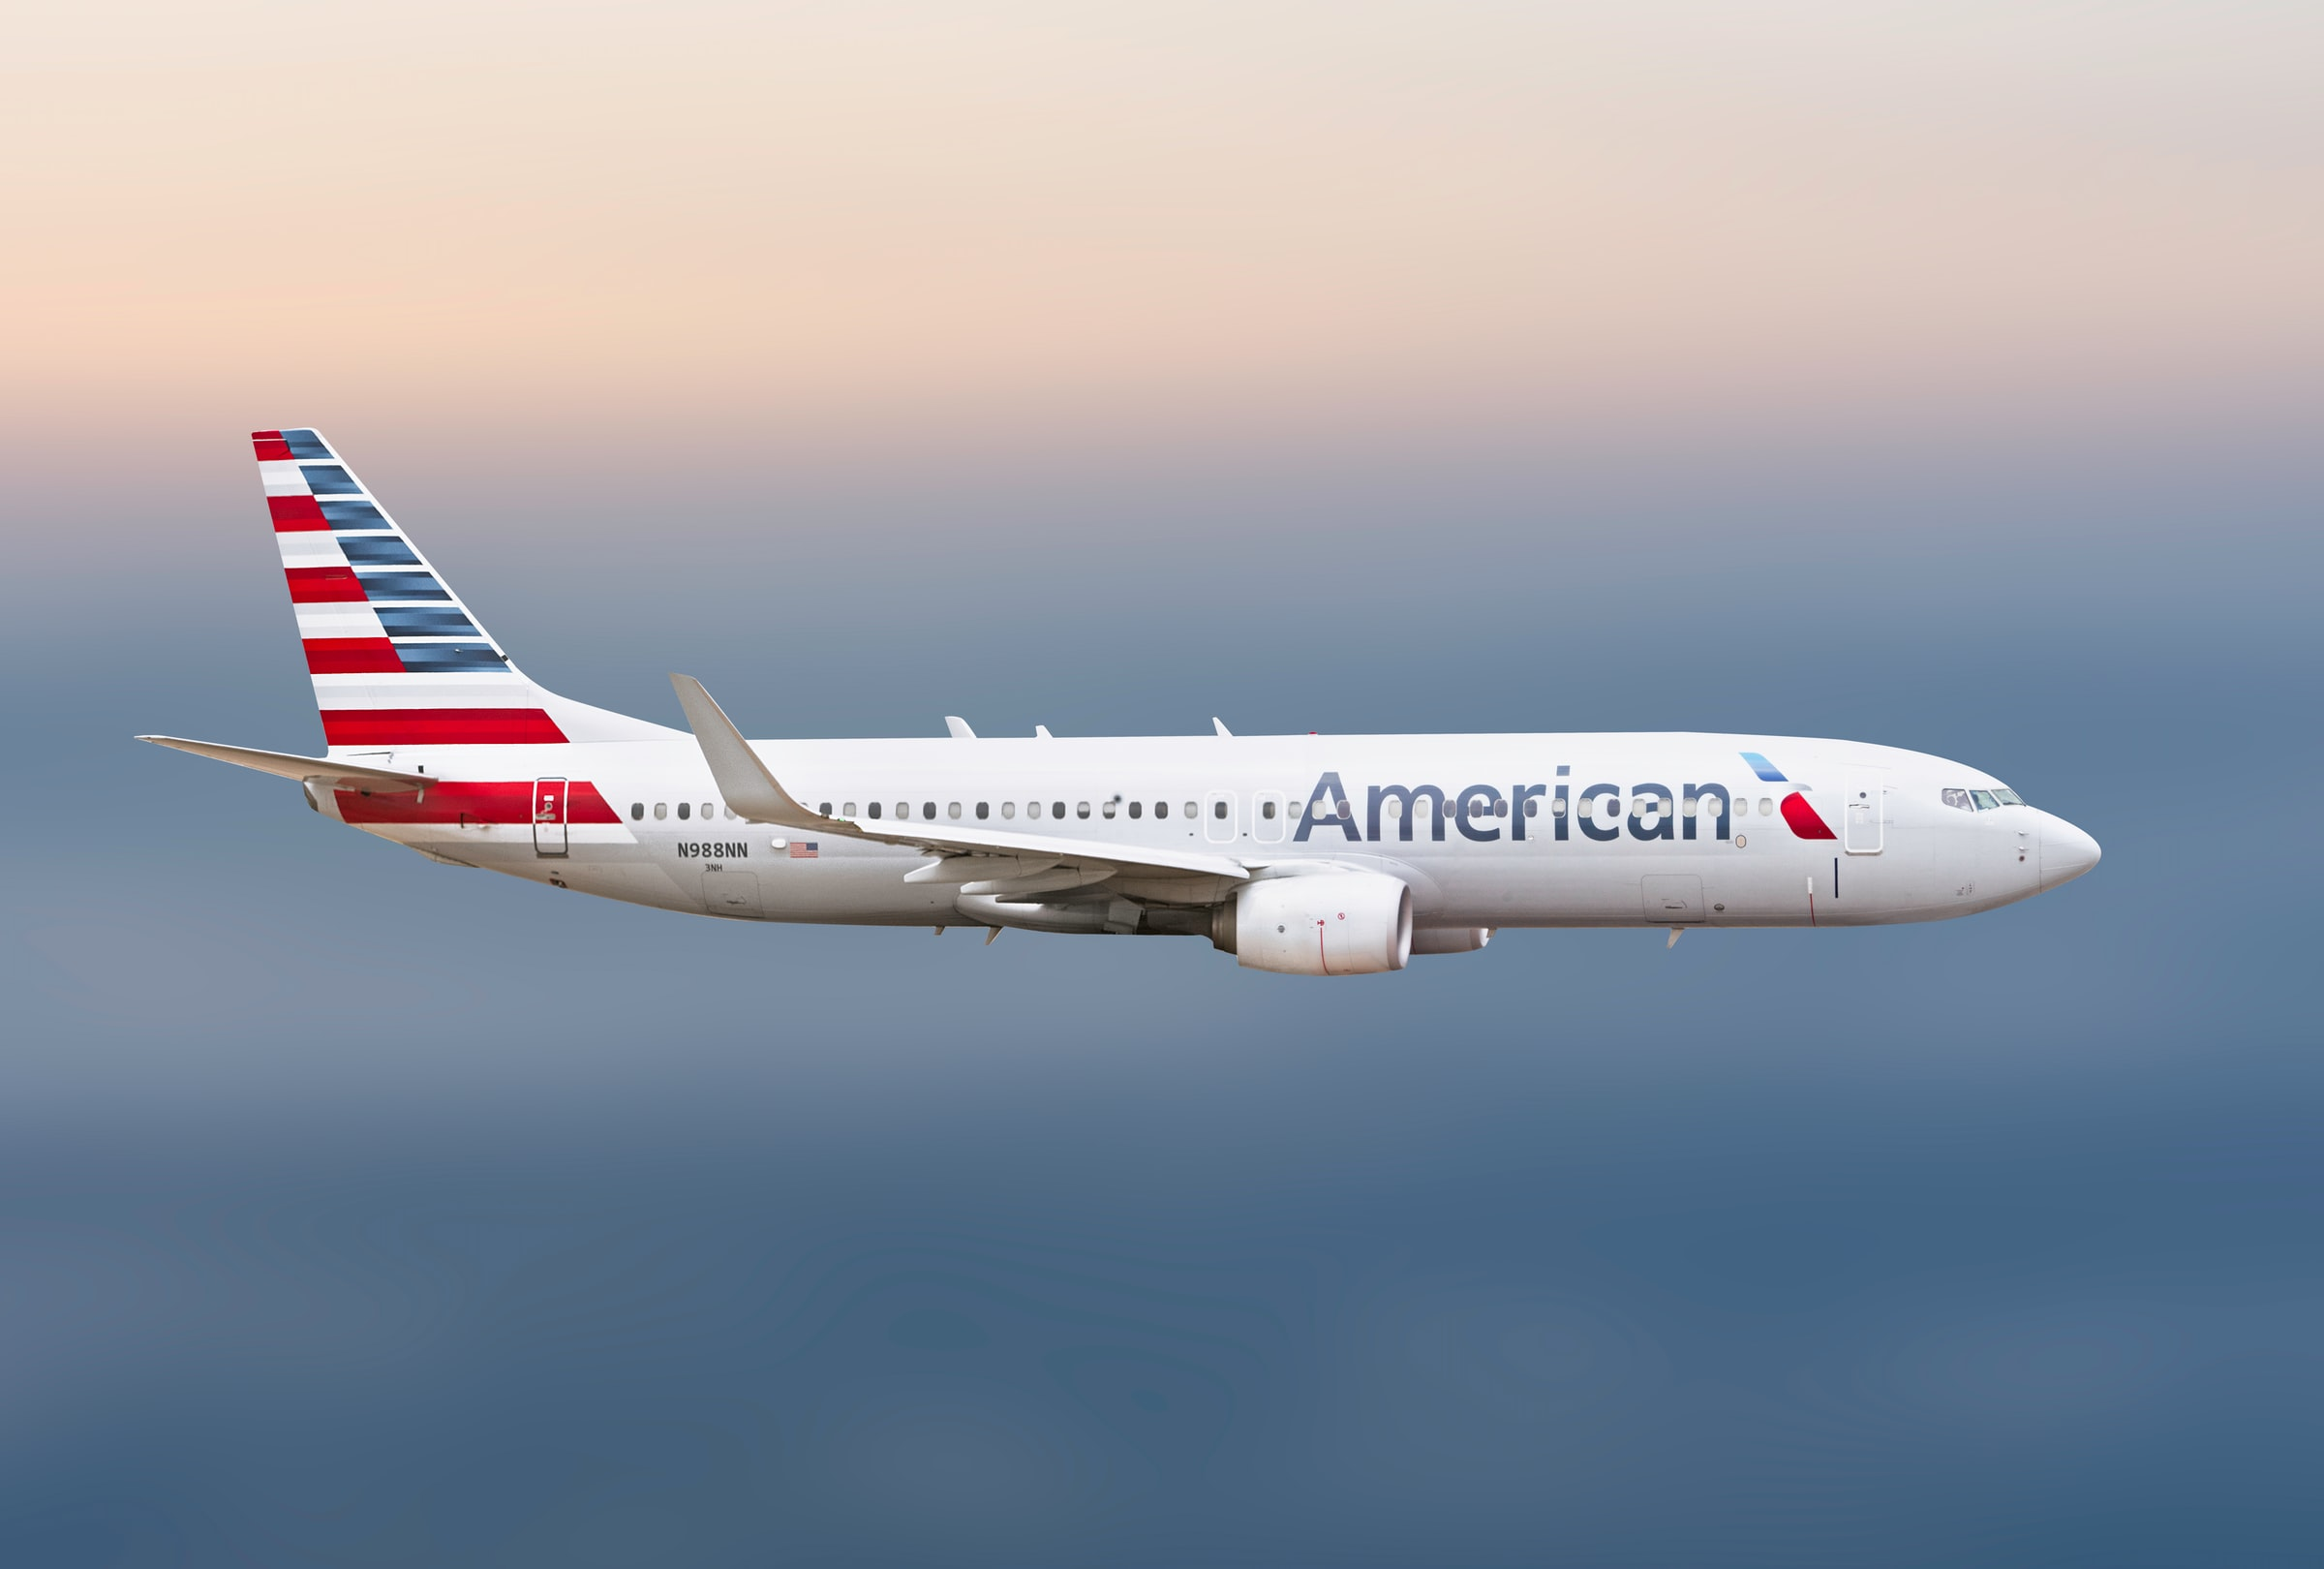 American Airlines: What You Should Know?